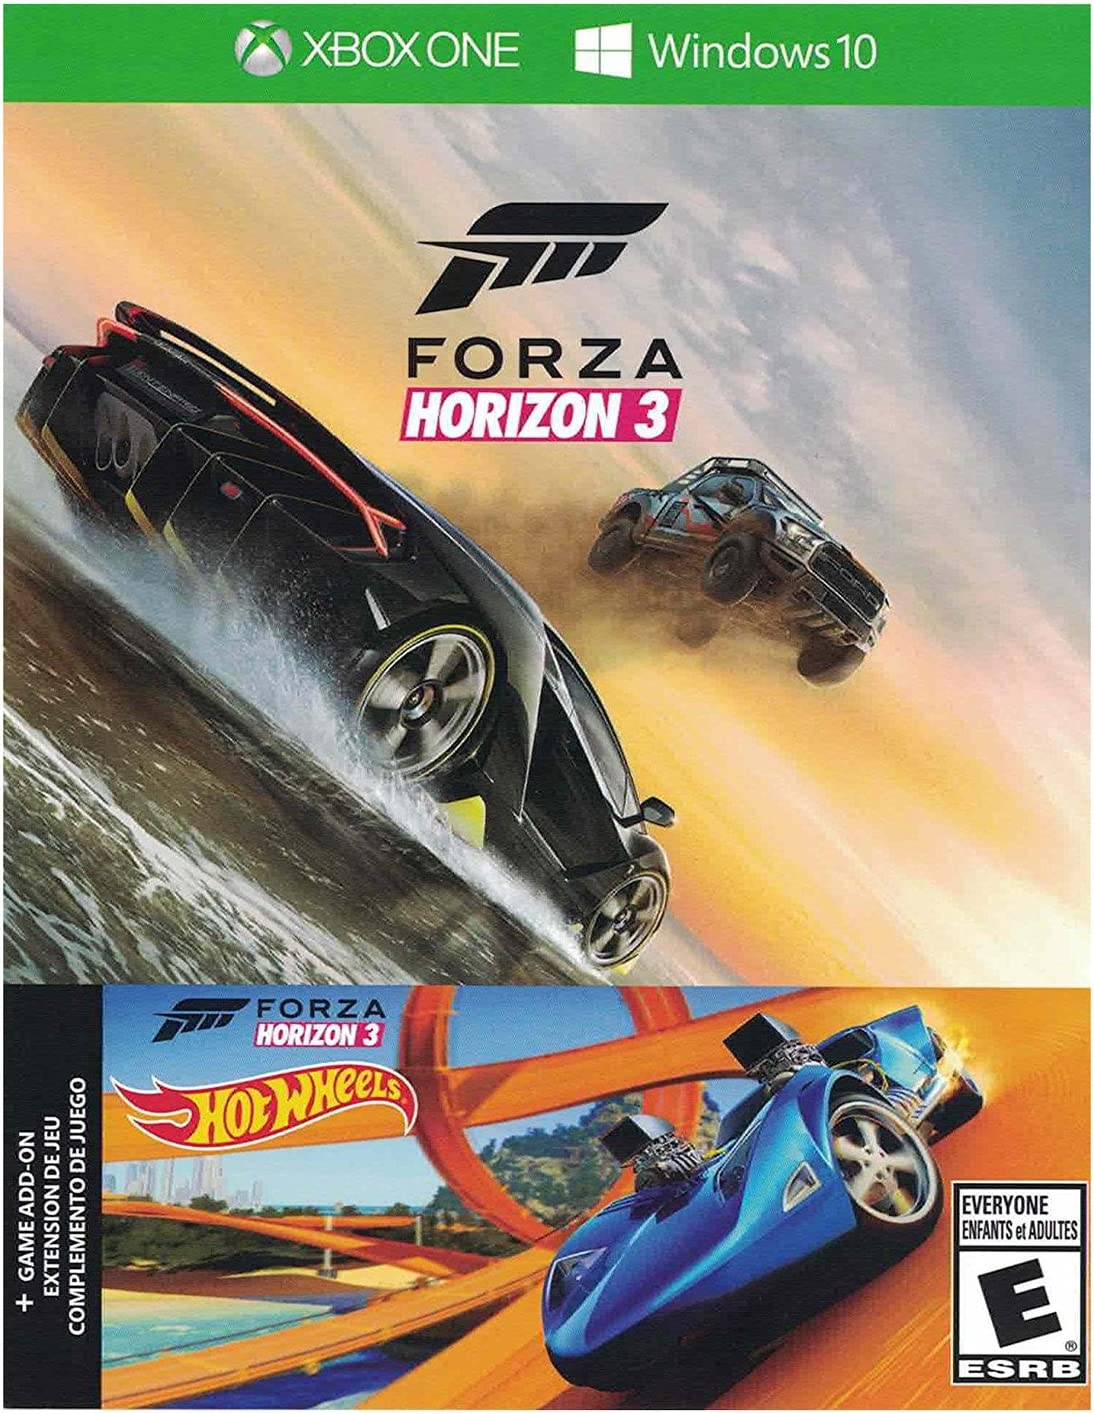 Microsoft Forza Horizon 3 + Hot Wheels DLC Xbox One/PC Digital ...